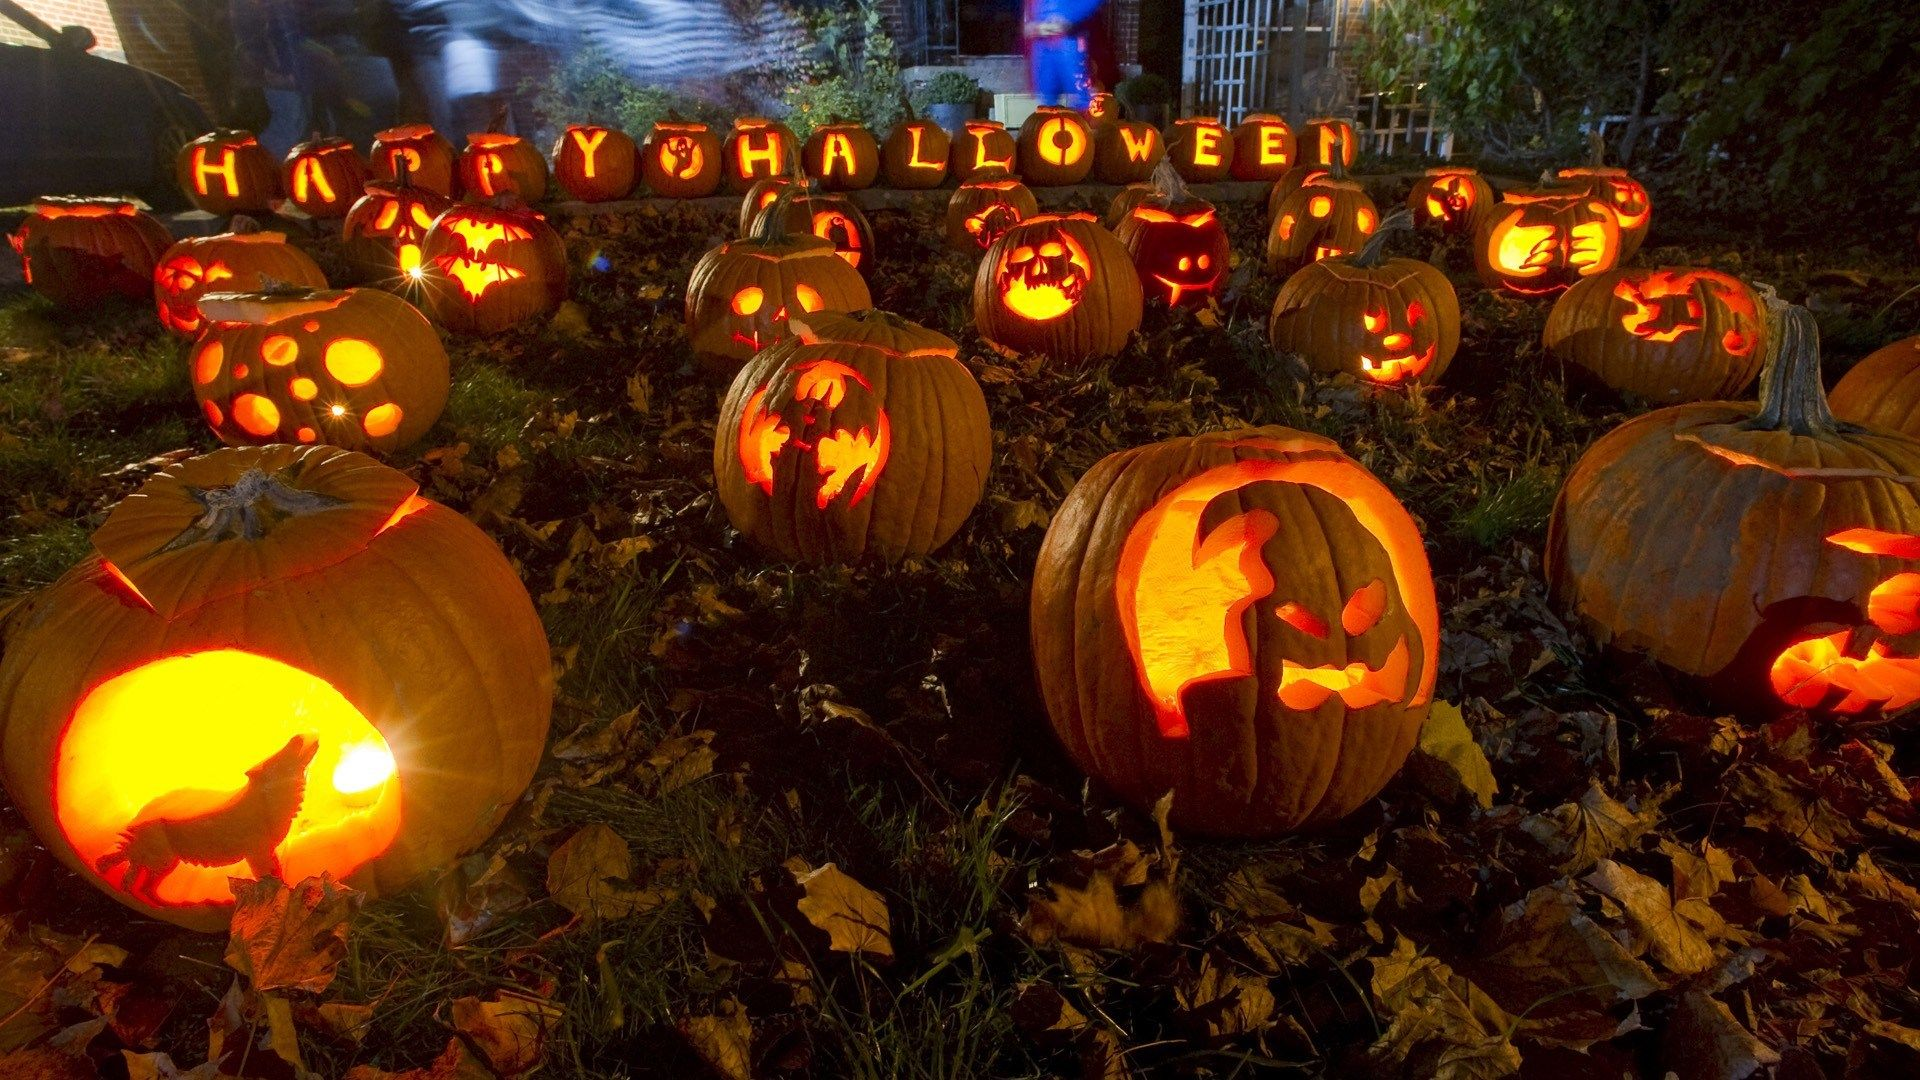 Halloween Hd Wallpapers 1080p Windows Halloween Wallpaper Halloween Pumpkin Images Halloween Party Night